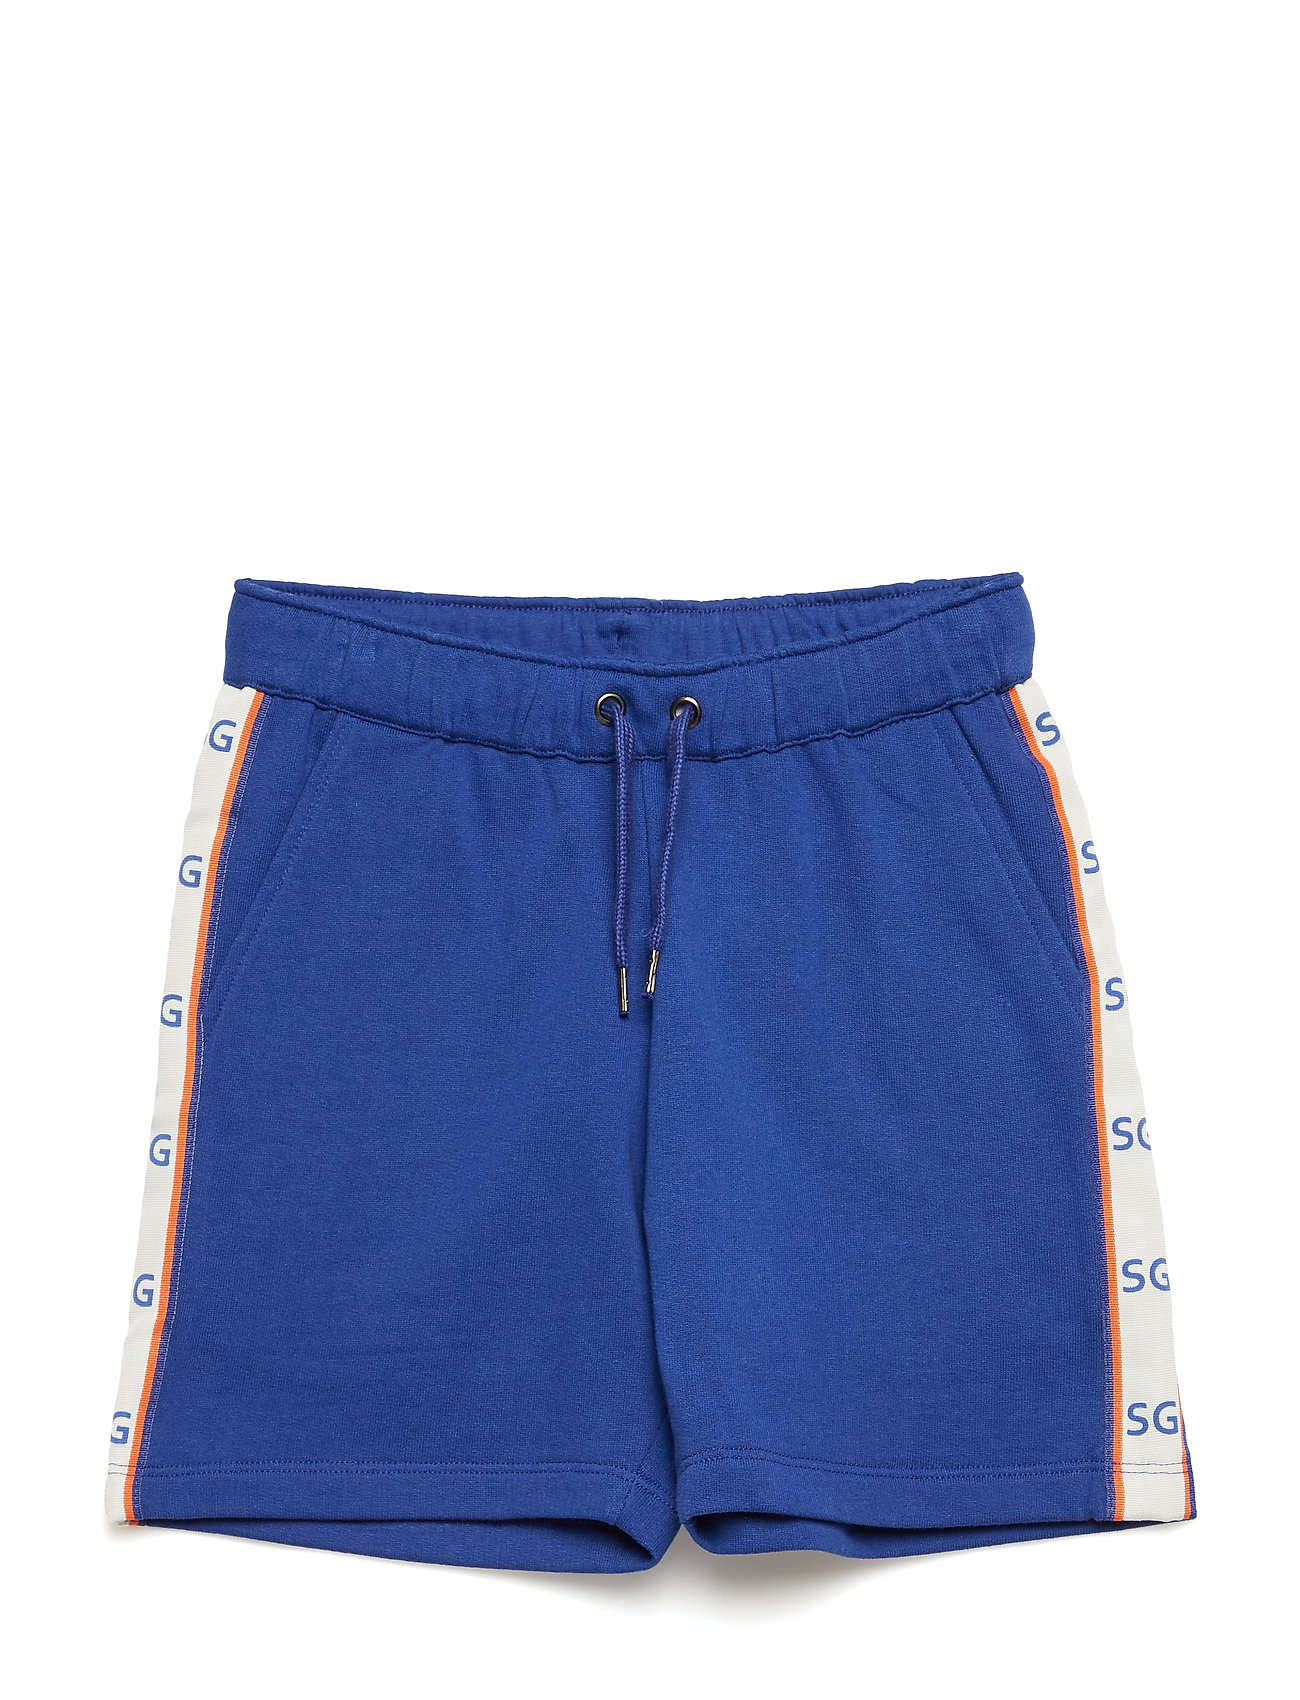 Soft Gallery Damon Shorts - SODALITE BLUE